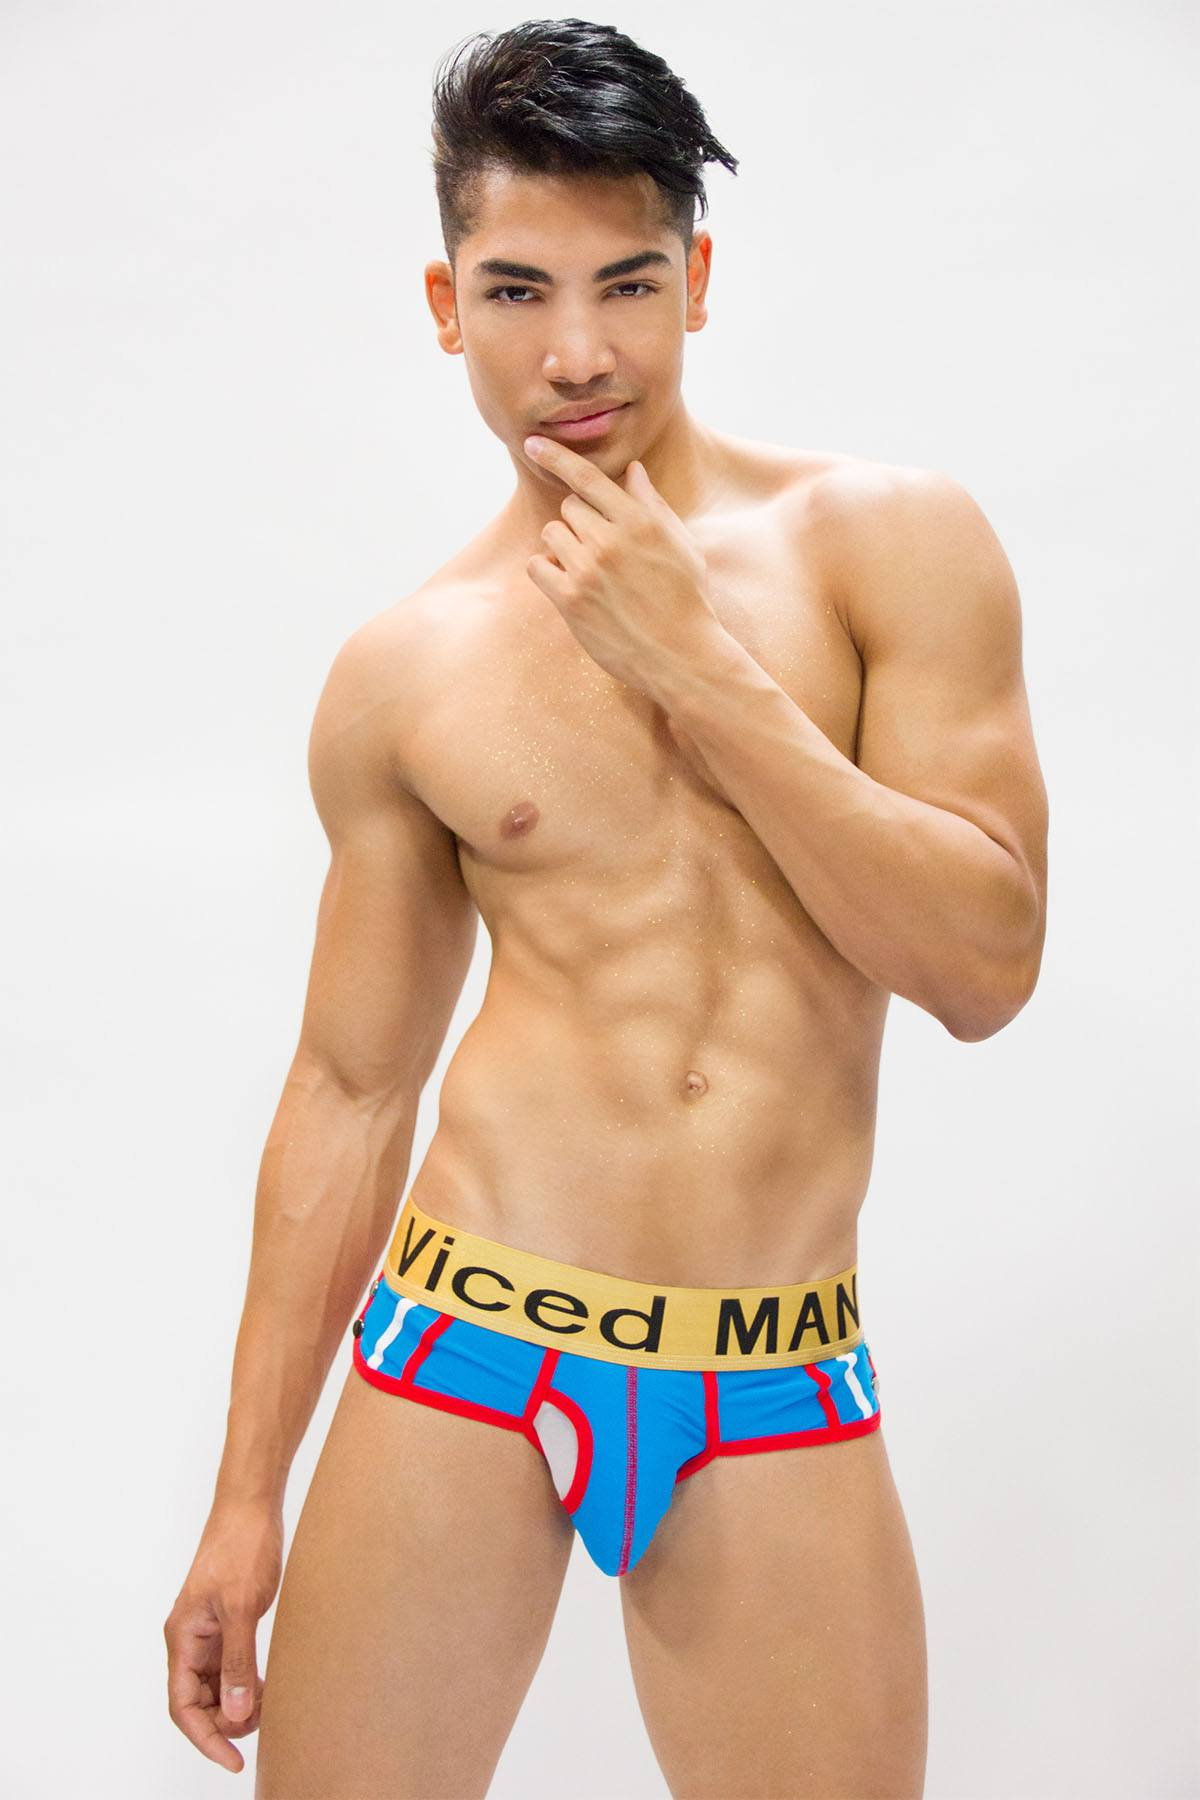 Sexy Temptation - Viced MAN US Store